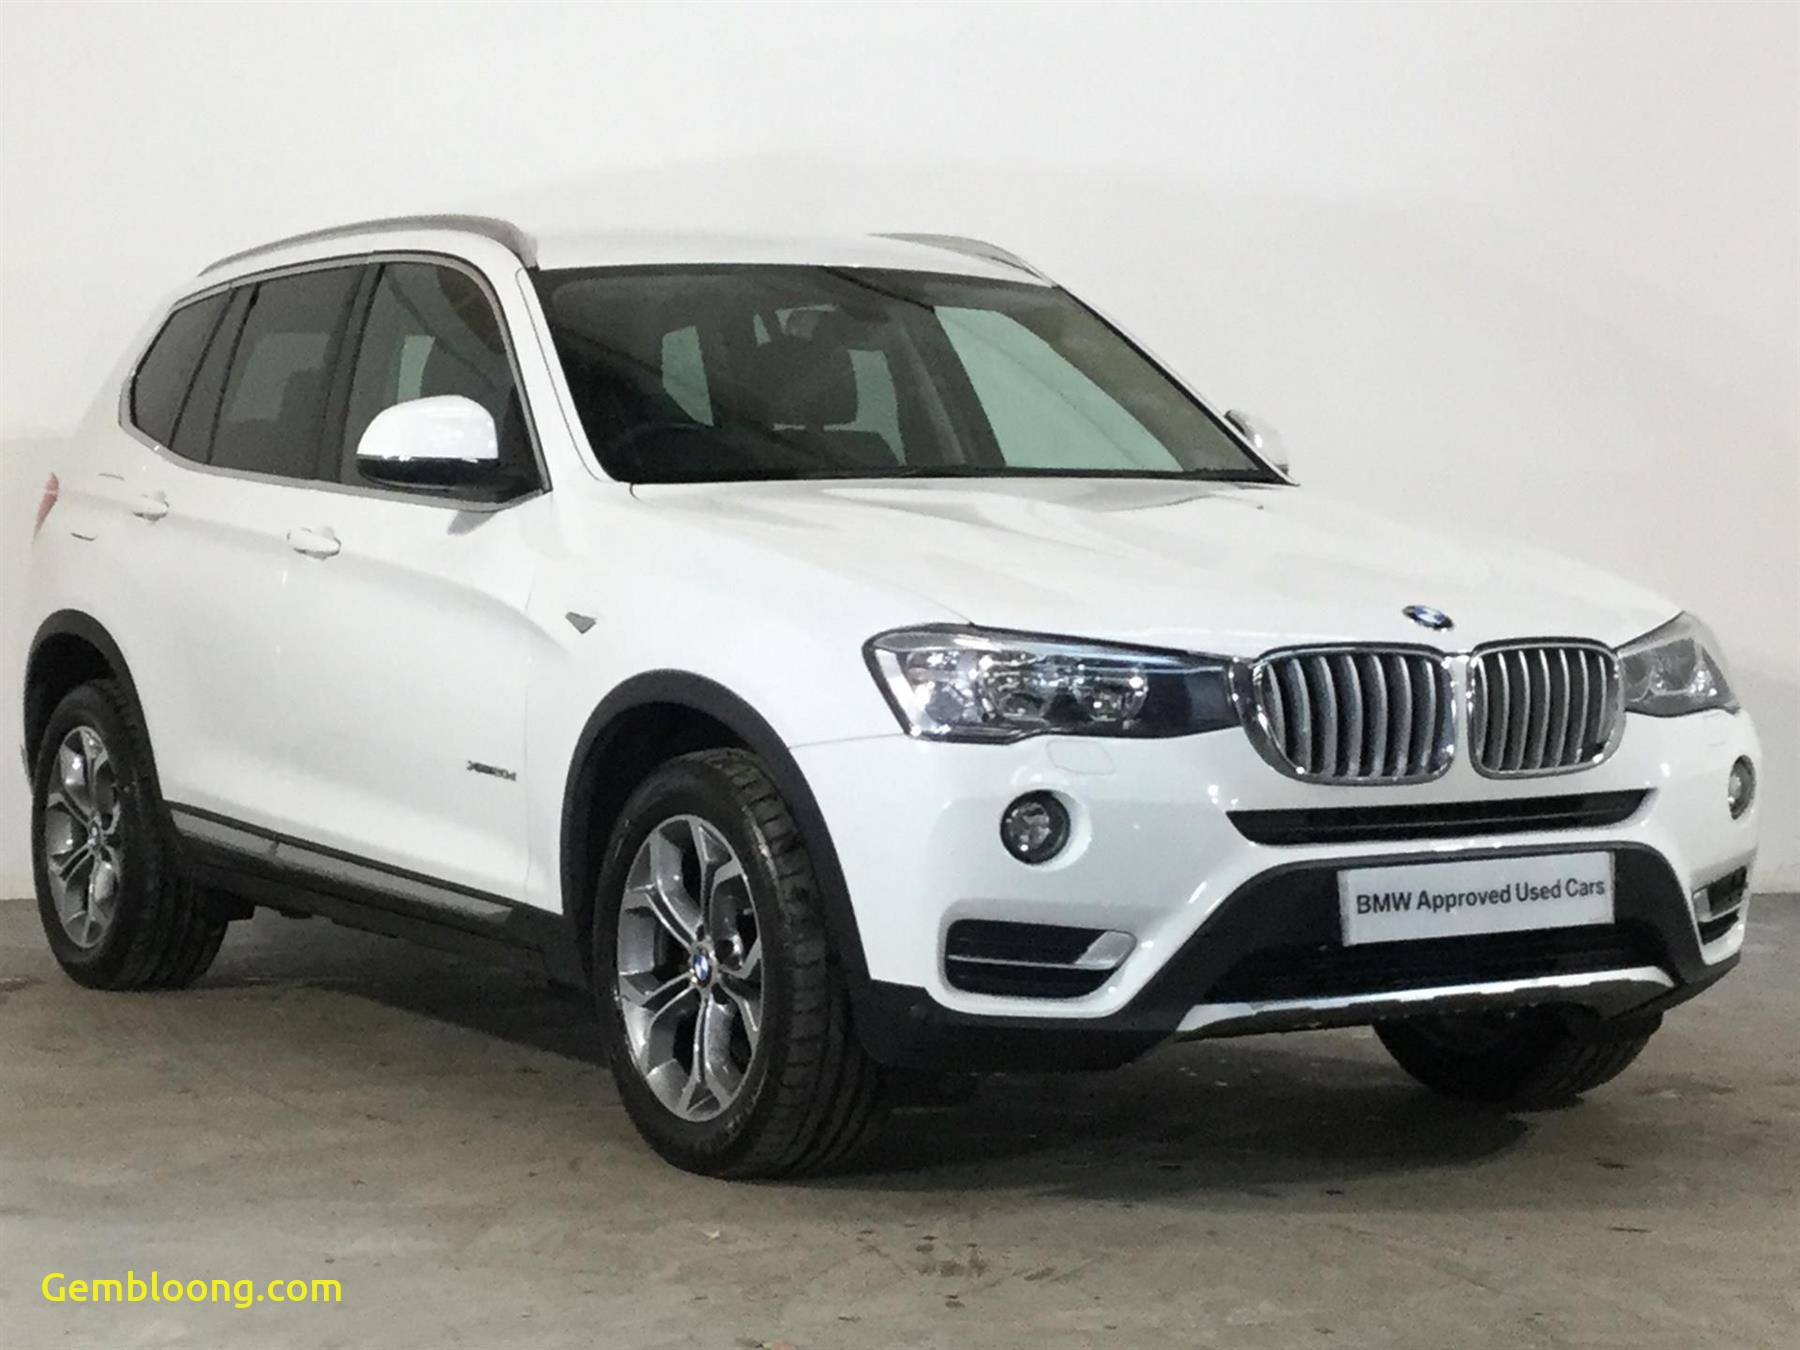 Used Bmw X3 Fresh Used 2015 Bmw X3 F25 X3 Xdrive20d Xline B47 2 0d for Sale In